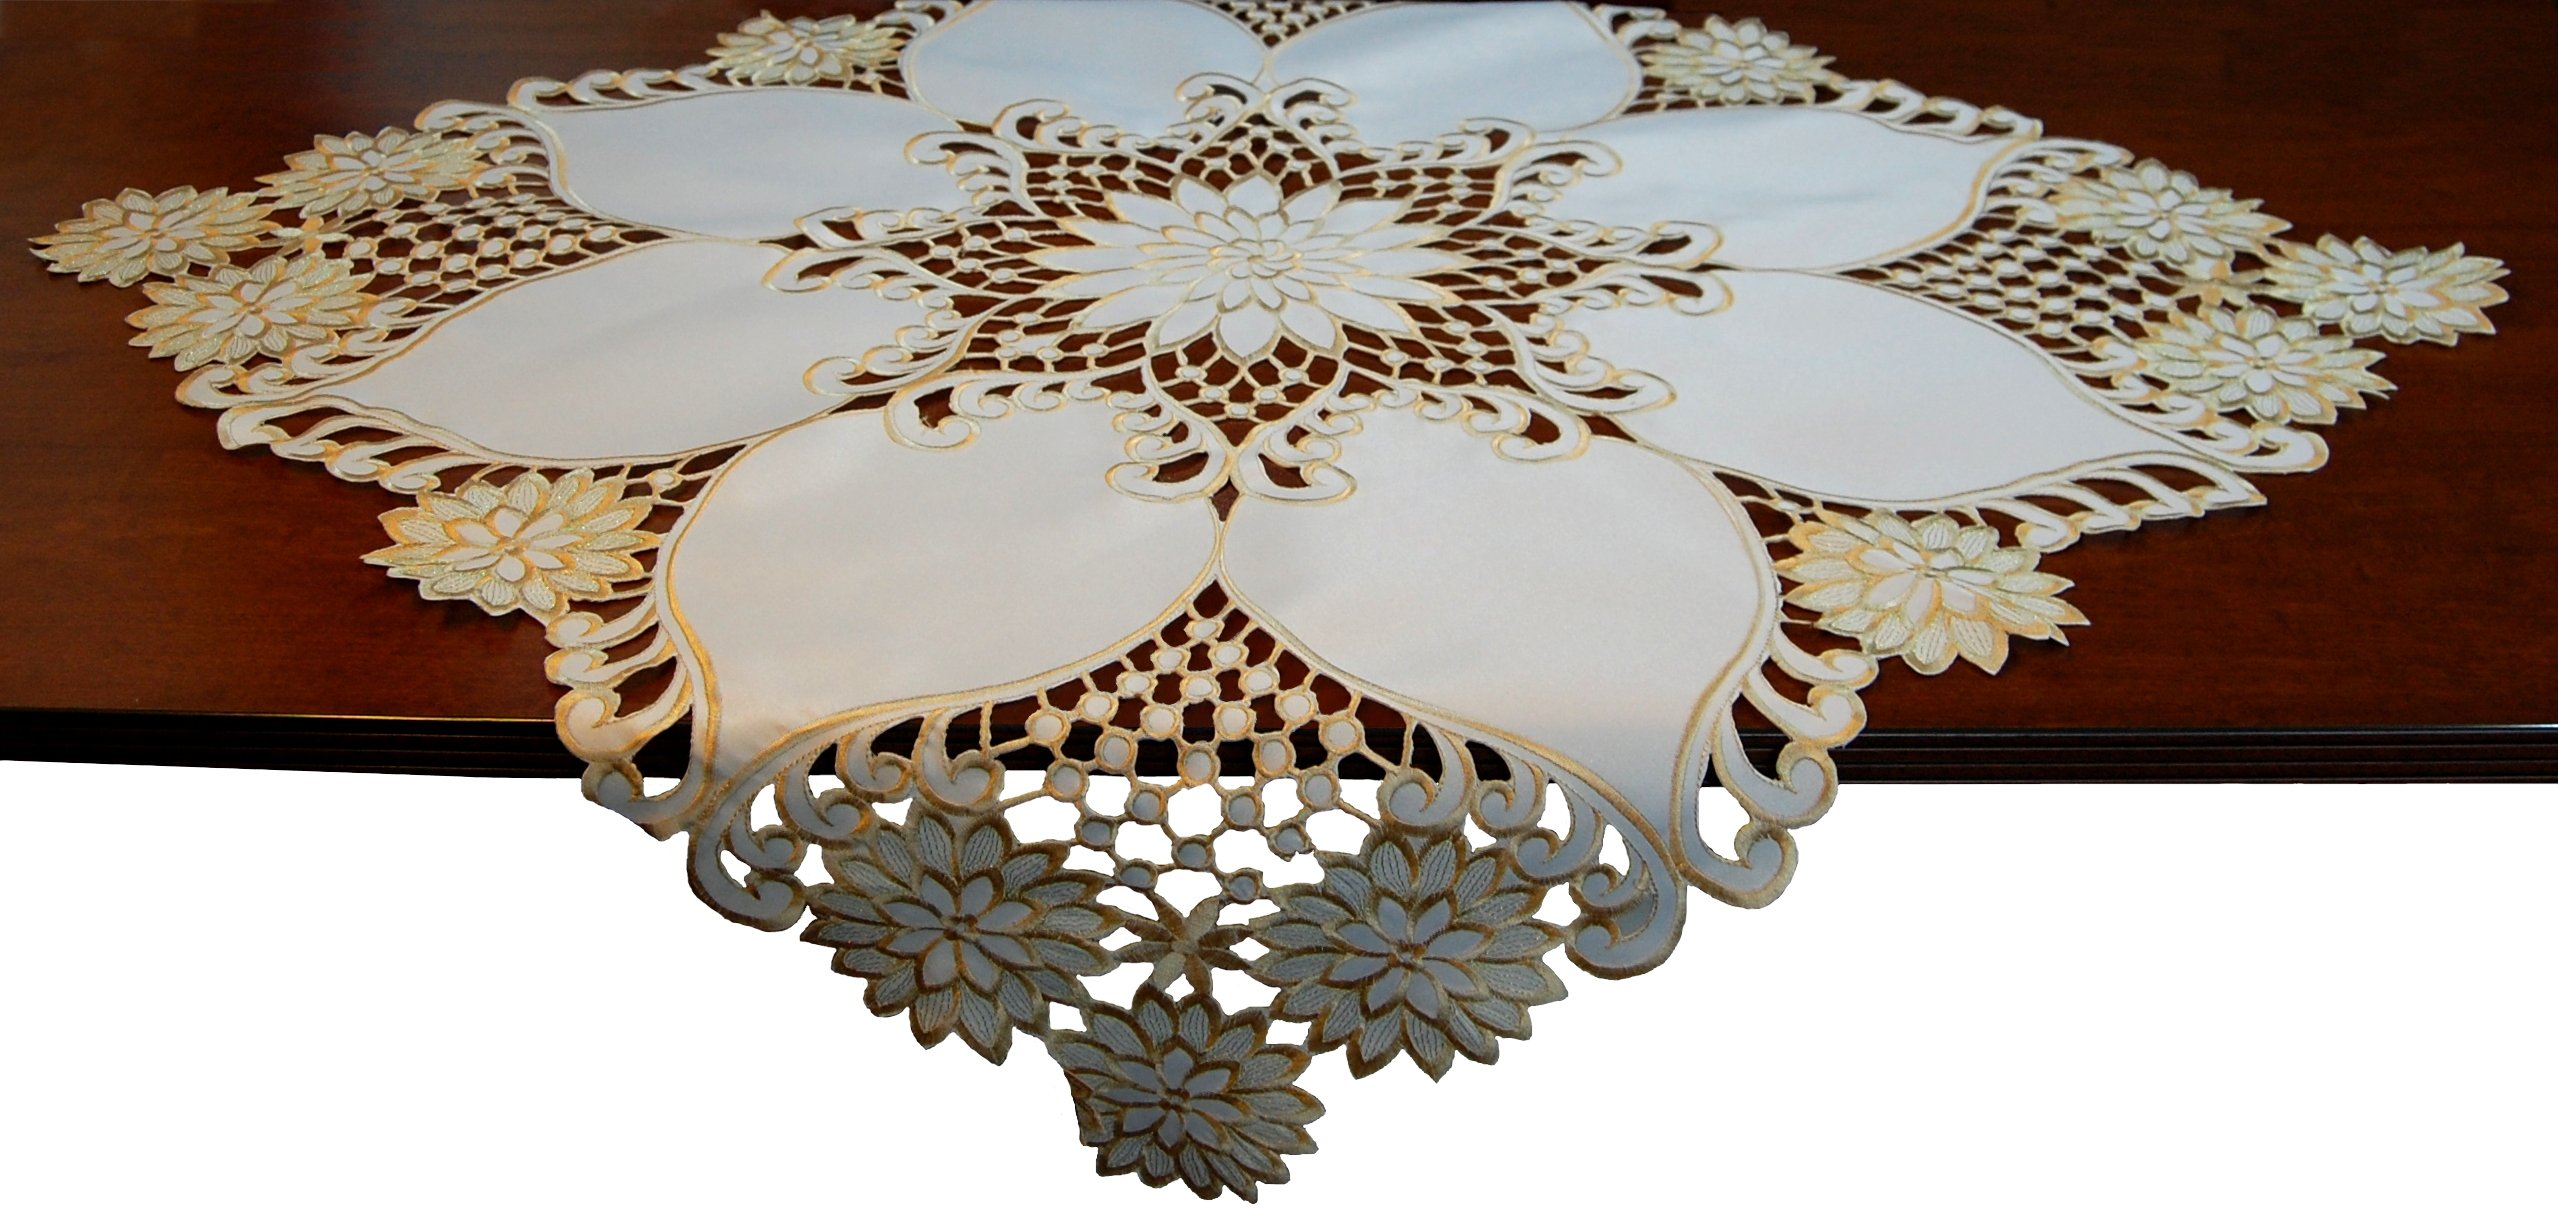 EcoSol Designs Embroidered Table Topper Centerpiece (33''x33'', White Lily) by EcoSol Designs